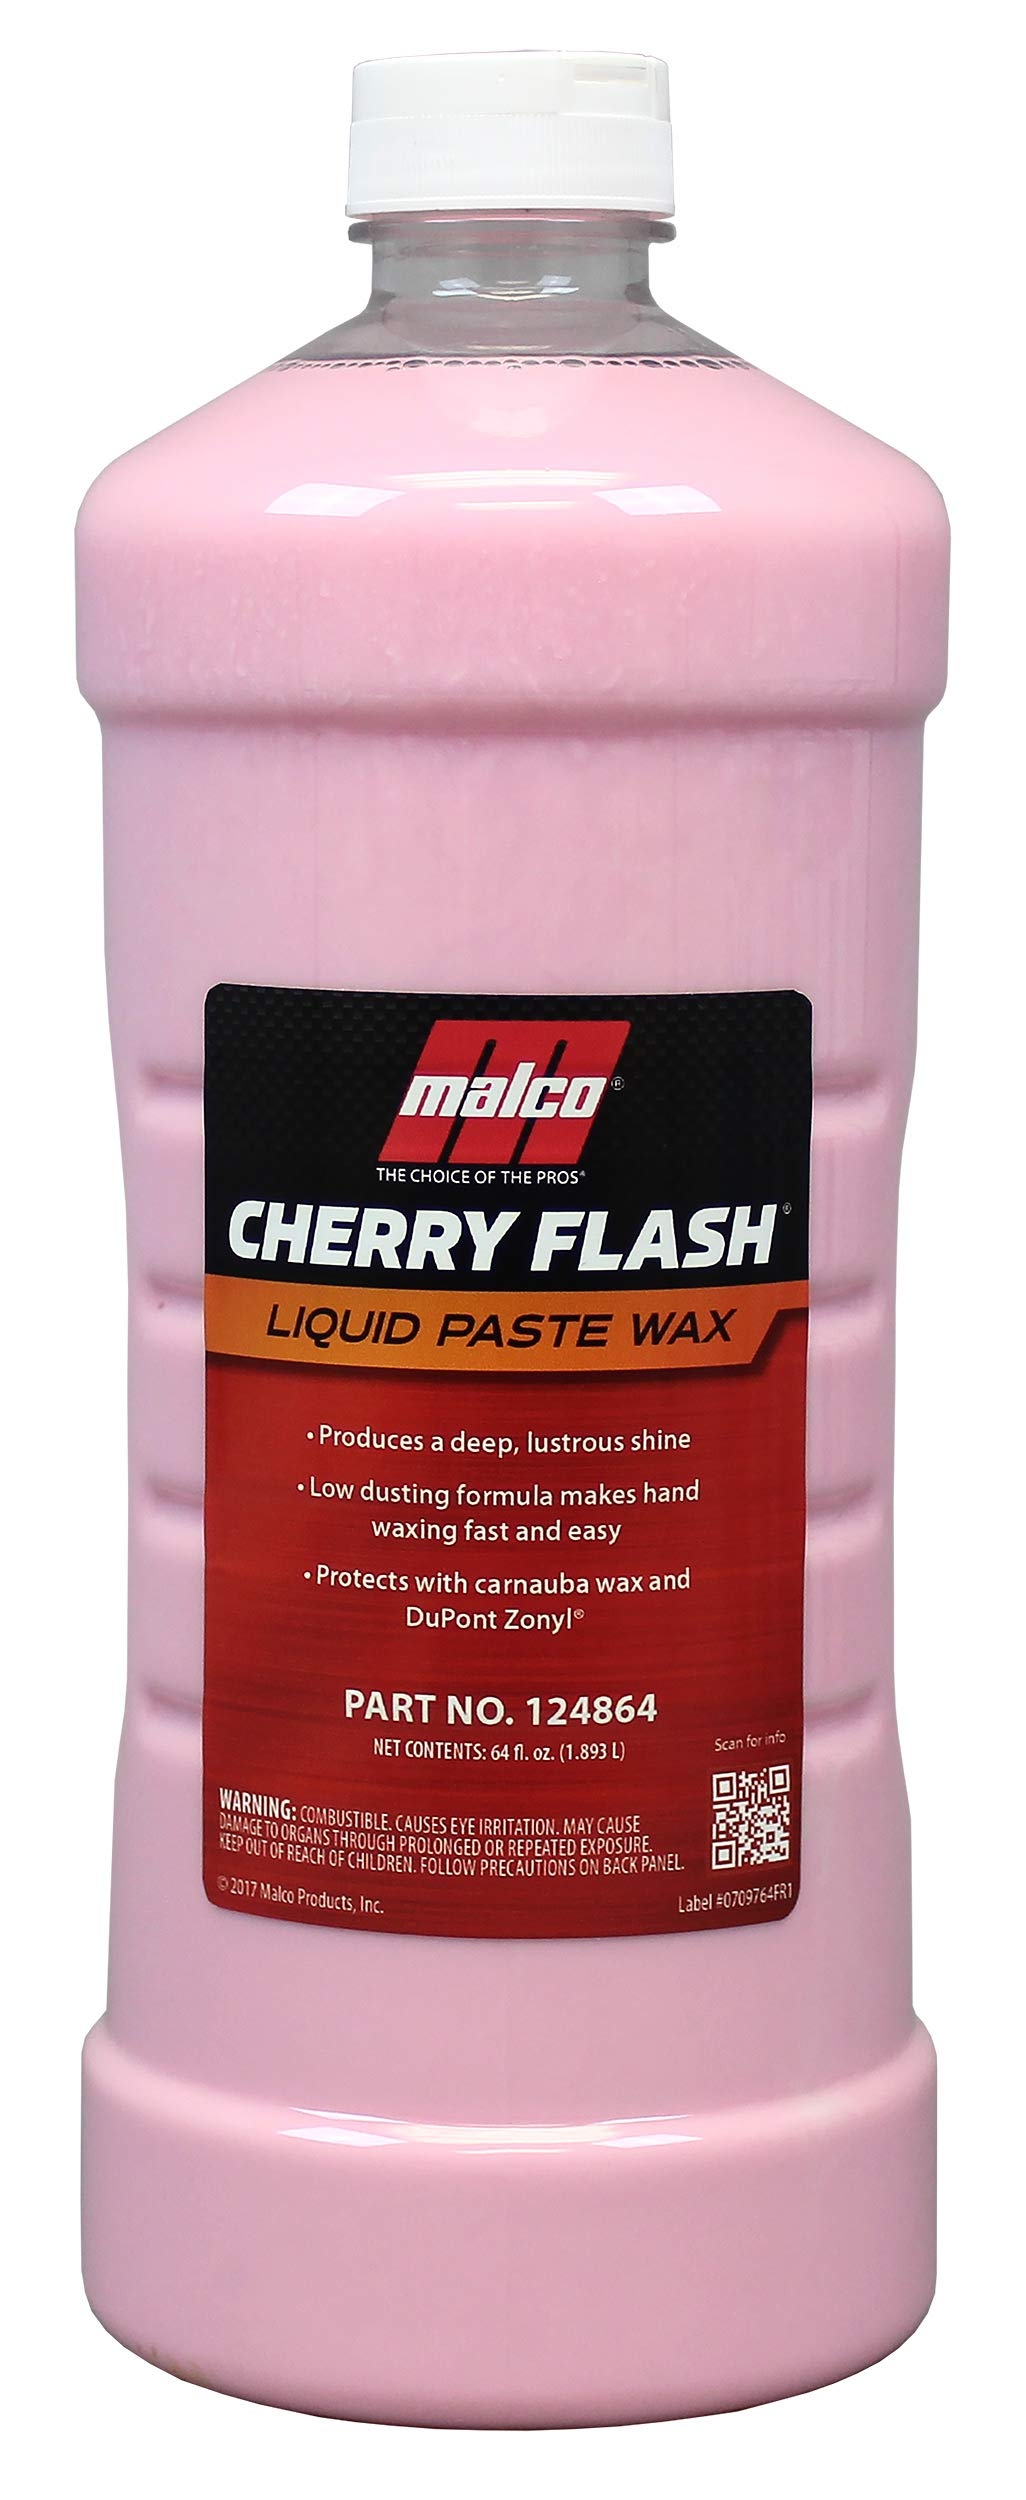 Malco Cherry Flash Automotive Liquid Paste Wax – Protect & Shine Your Vehicle/Easiest Way to Hand Wax Your Car/Lasting Gloss & Protection for Cars, Trucks, Boats and Motorcycles / 64 Oz. (124864)